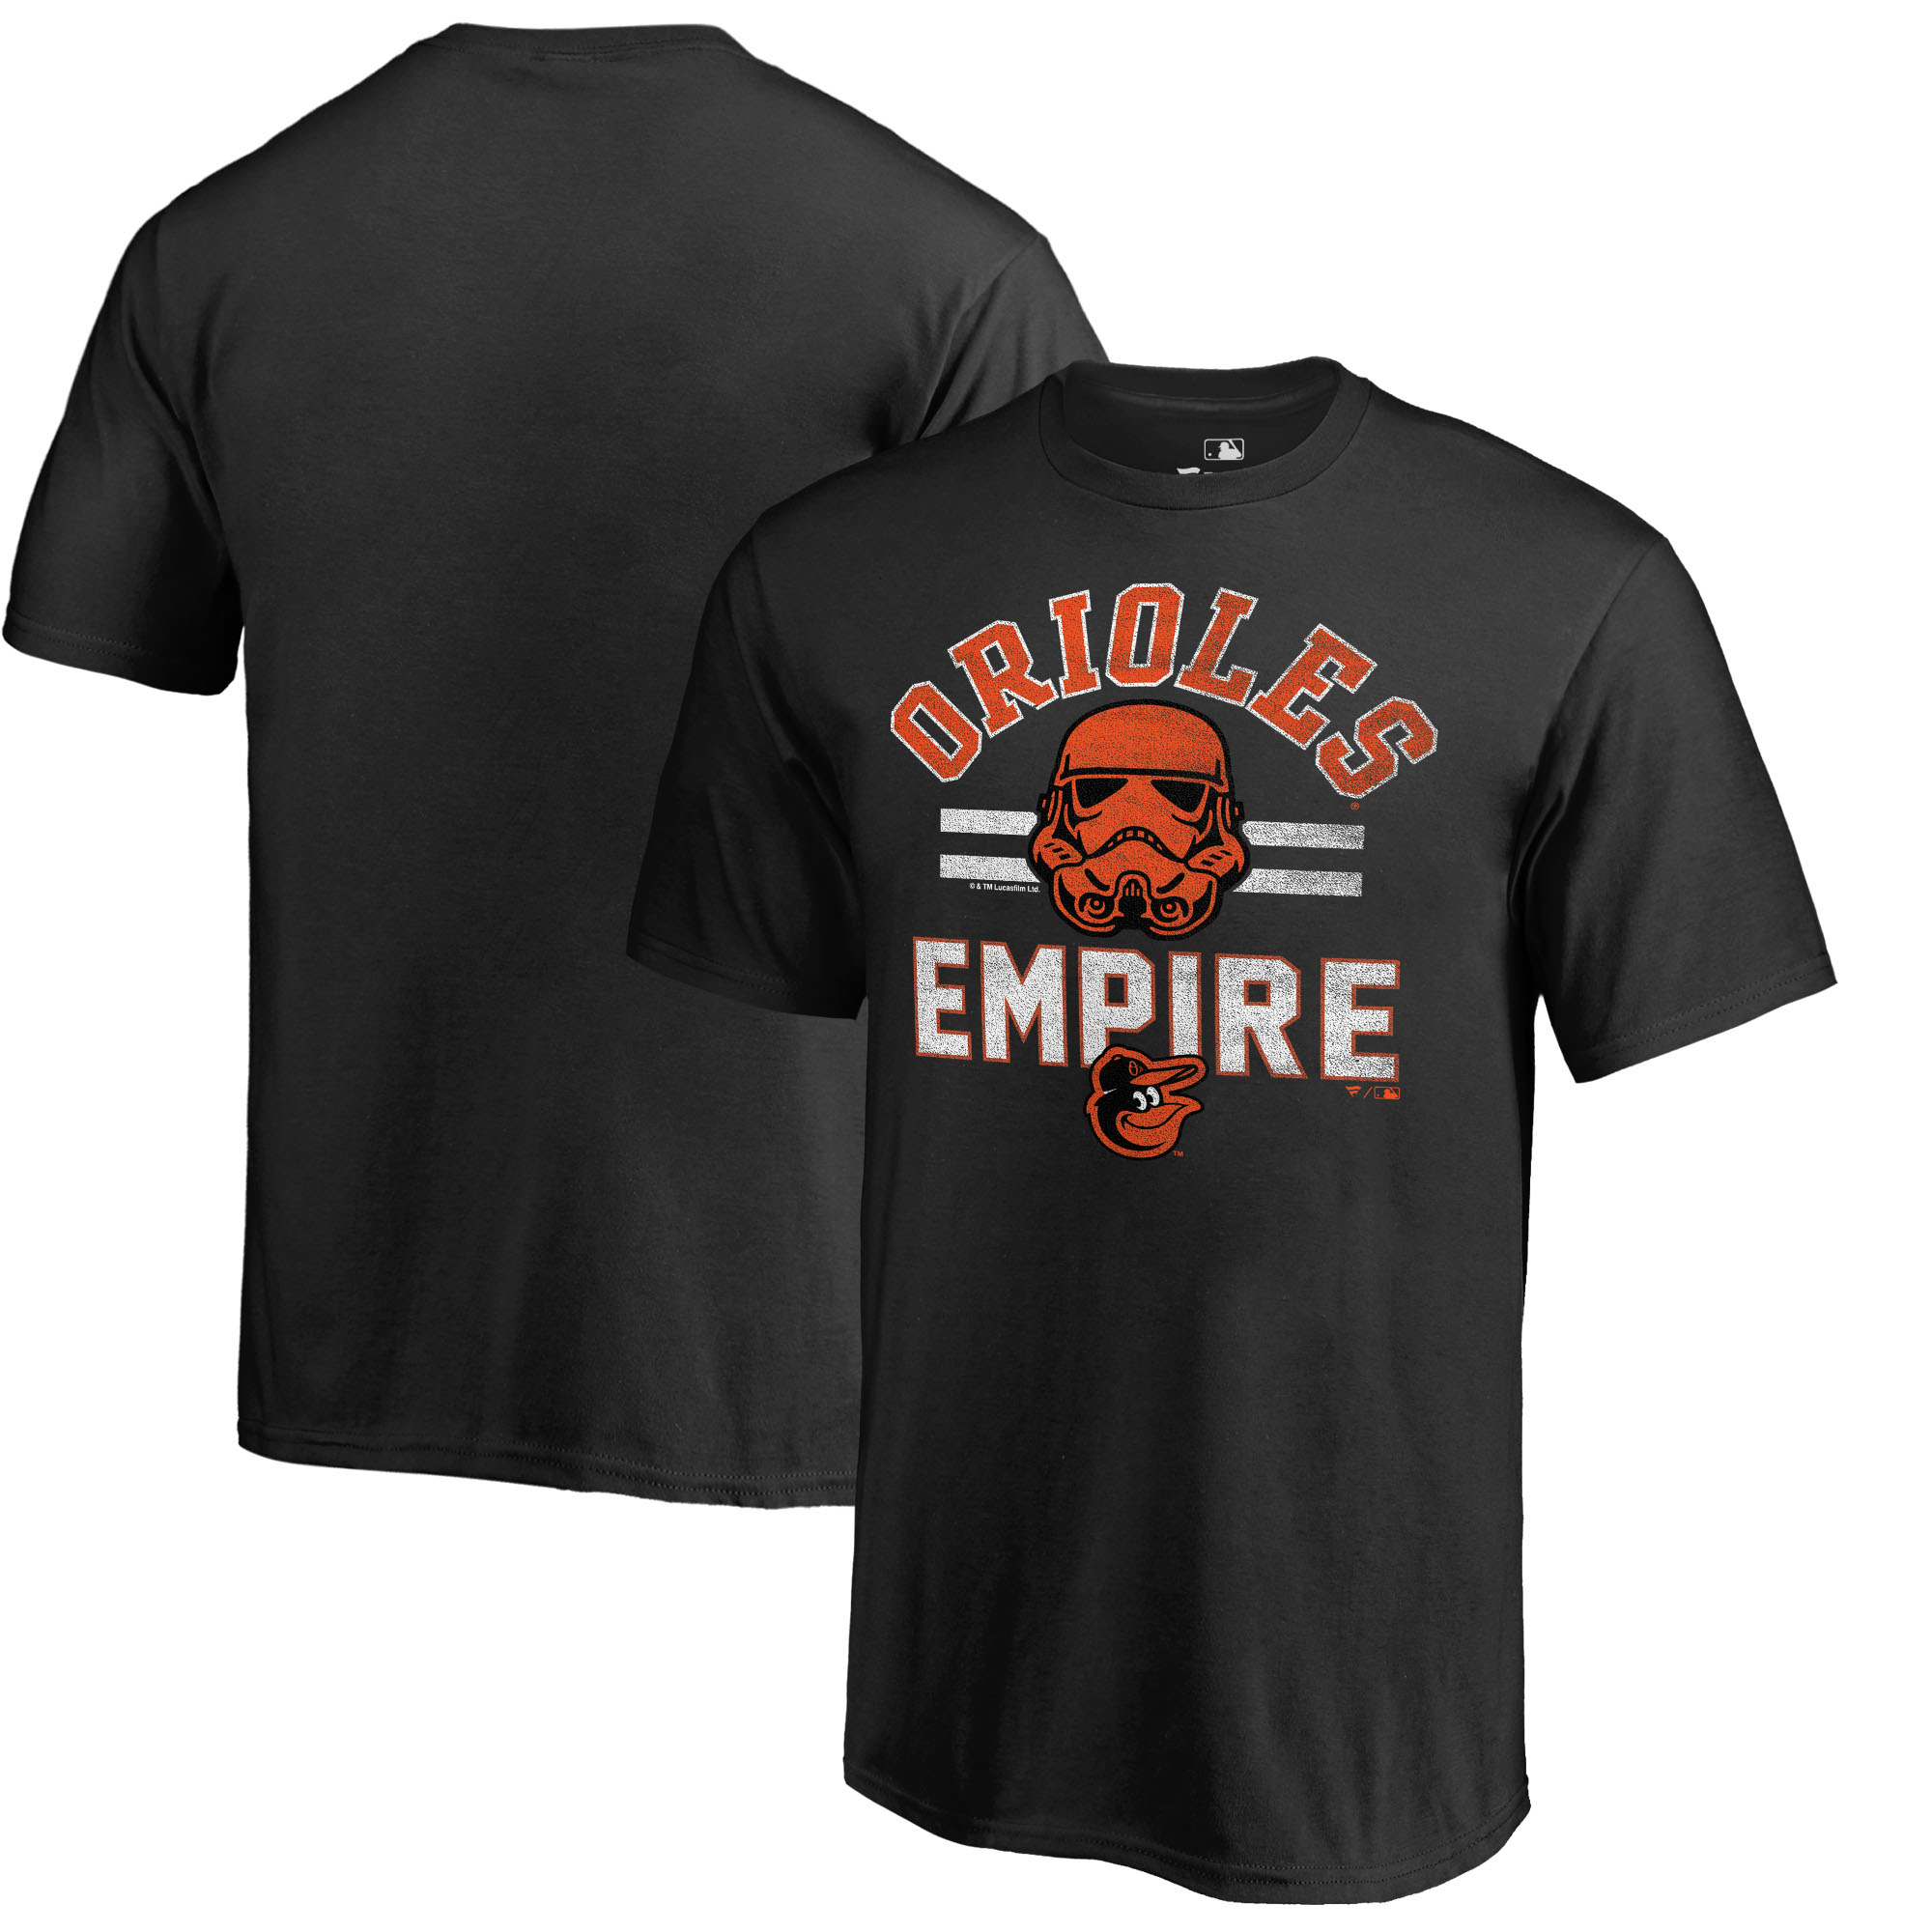 Baltimore Orioles Fanatics Branded Youth MLB Star Wars Empire T-Shirt - Black